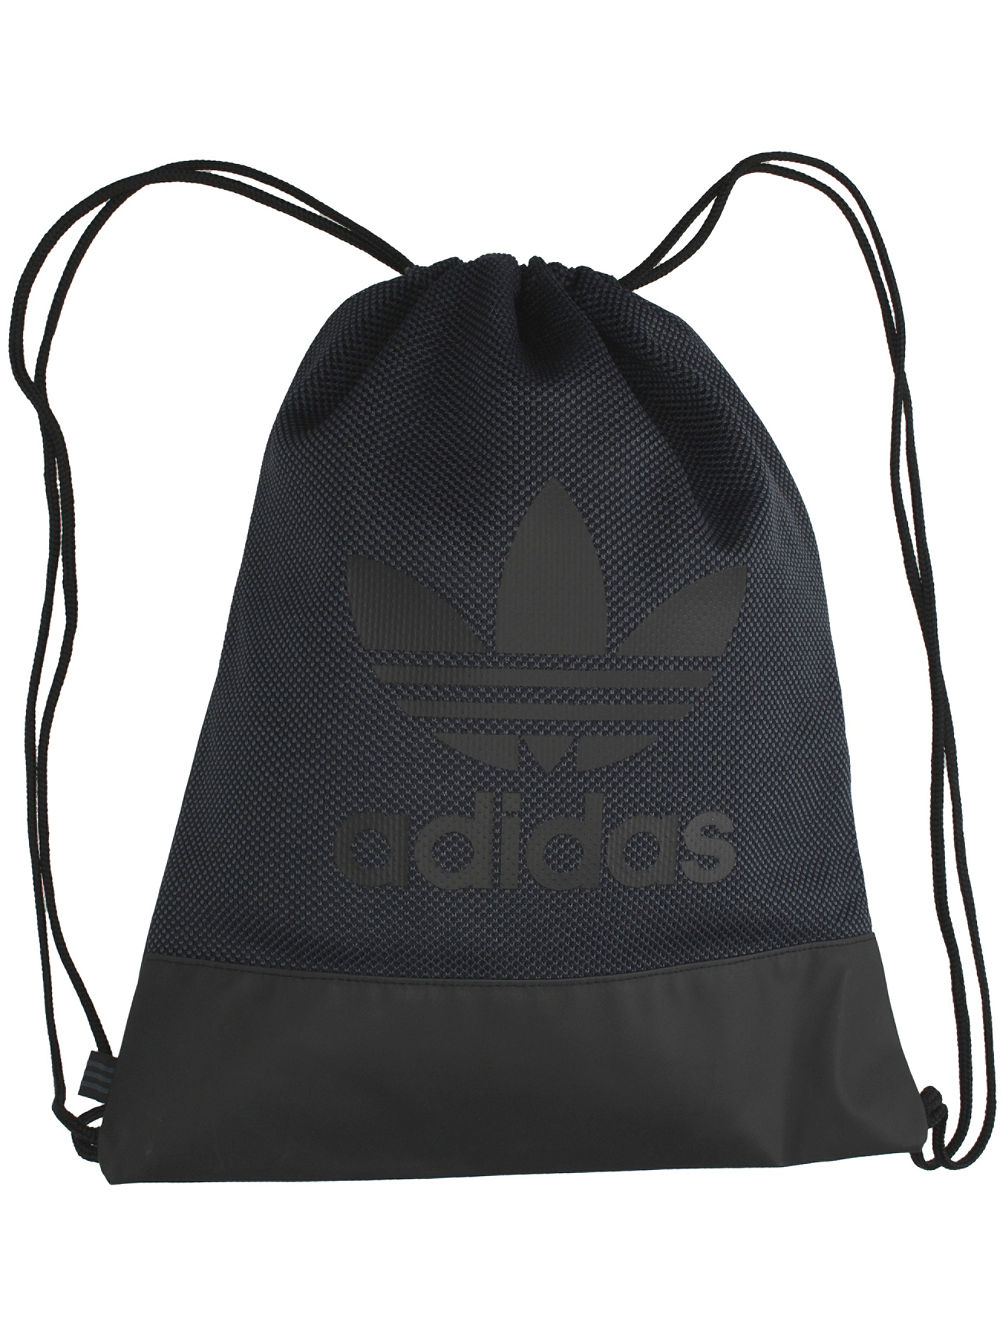 Buy adidas Originals Knit Gymsack Backpack online at blue-tomato.com aa9eb30a97